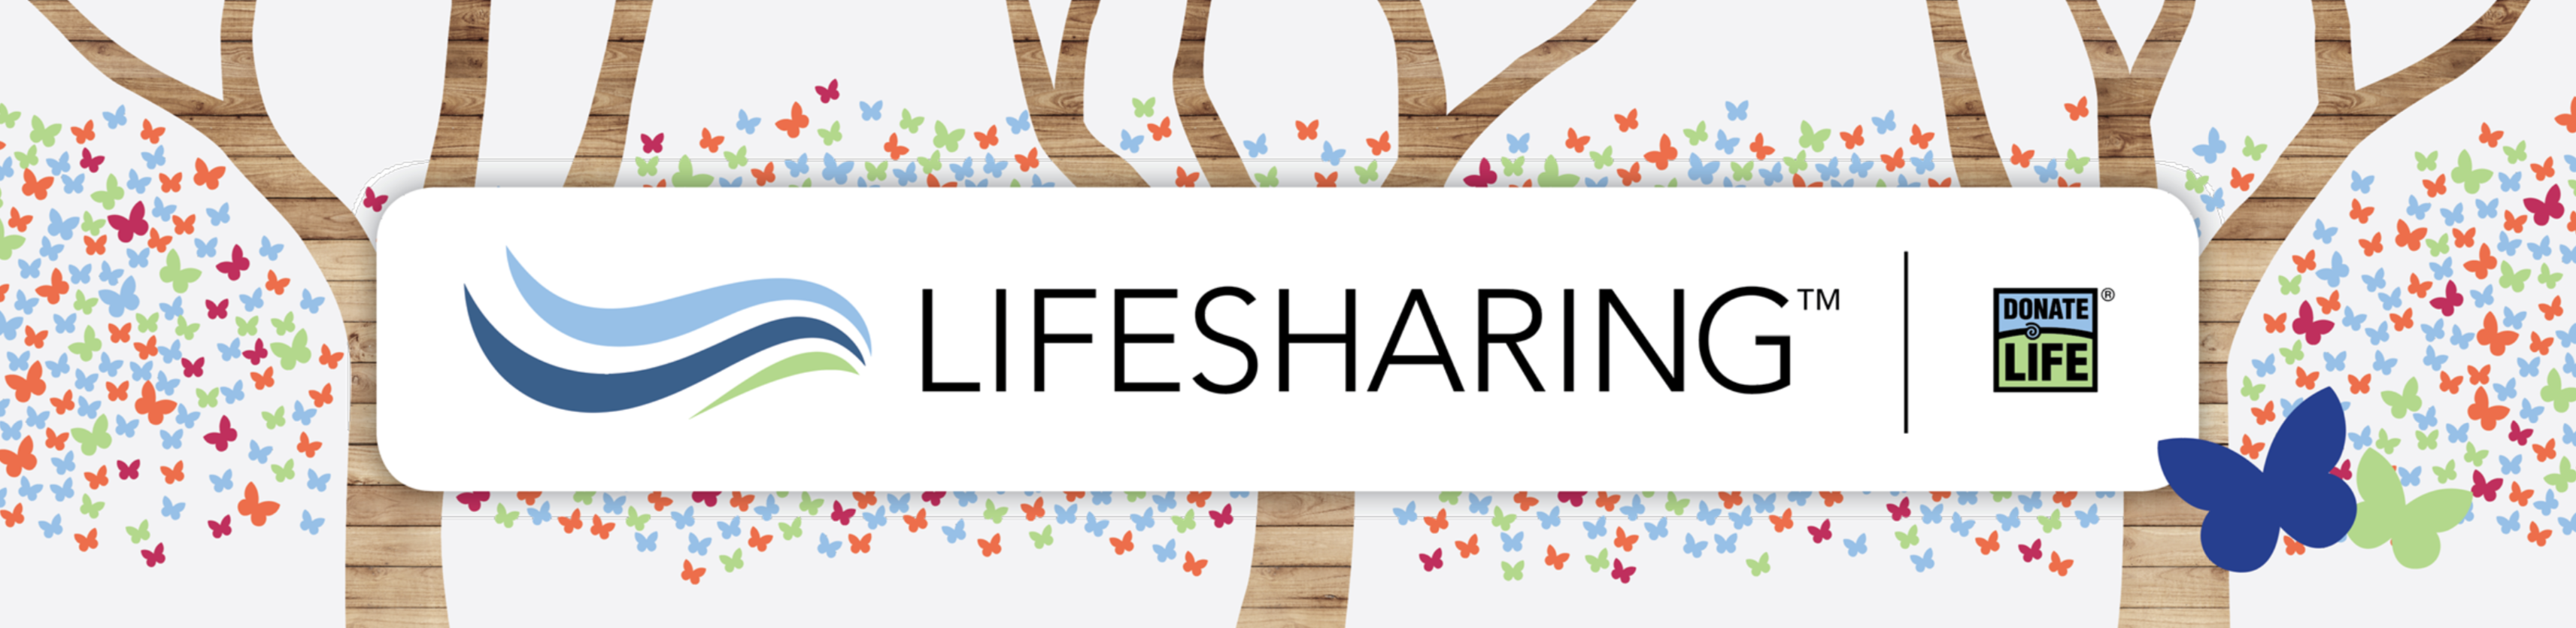 Lifesharing Butterfly Header